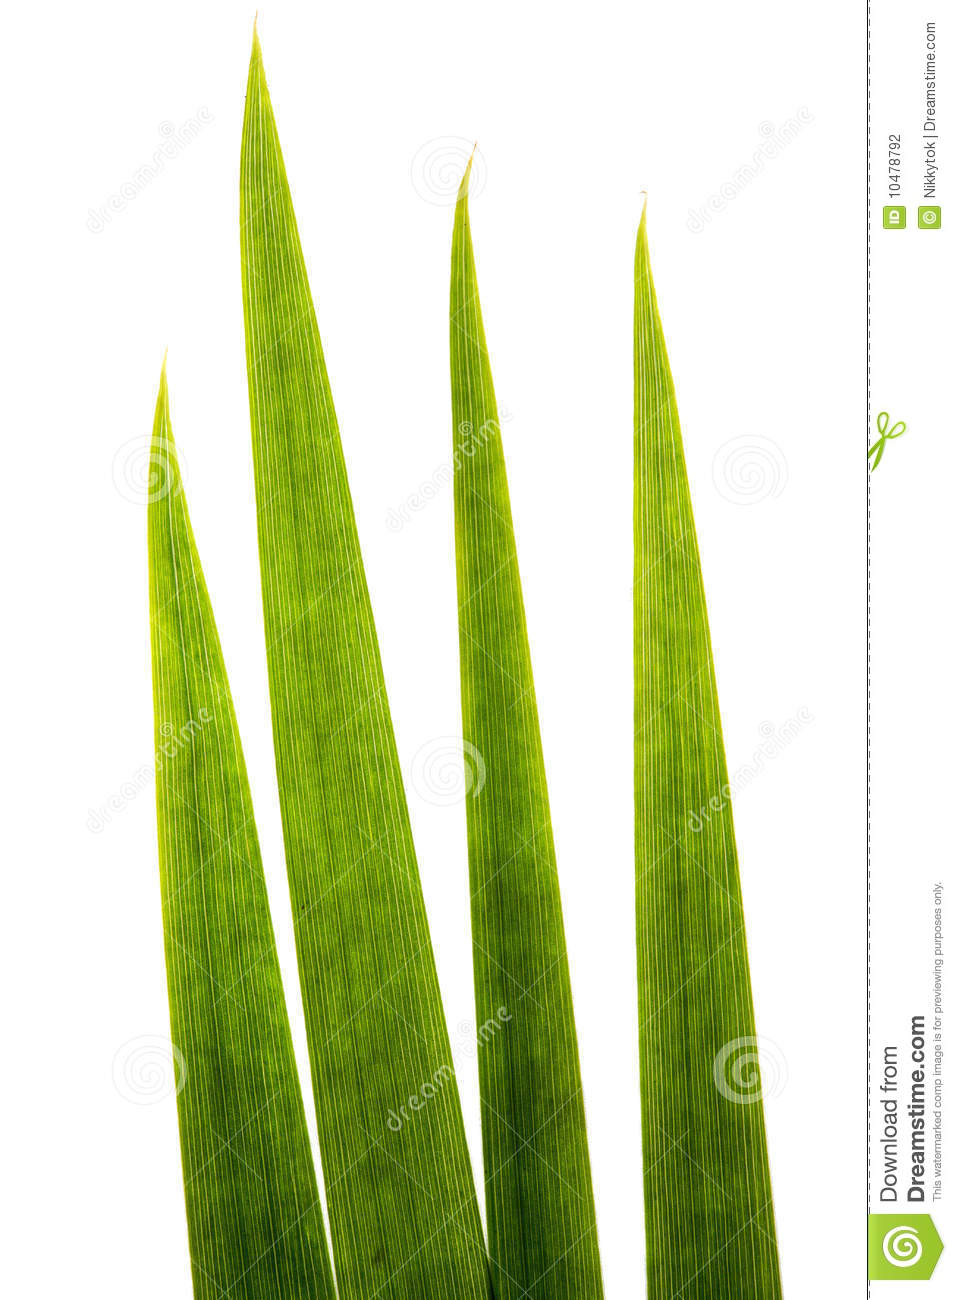 Single blade of grass clipart.